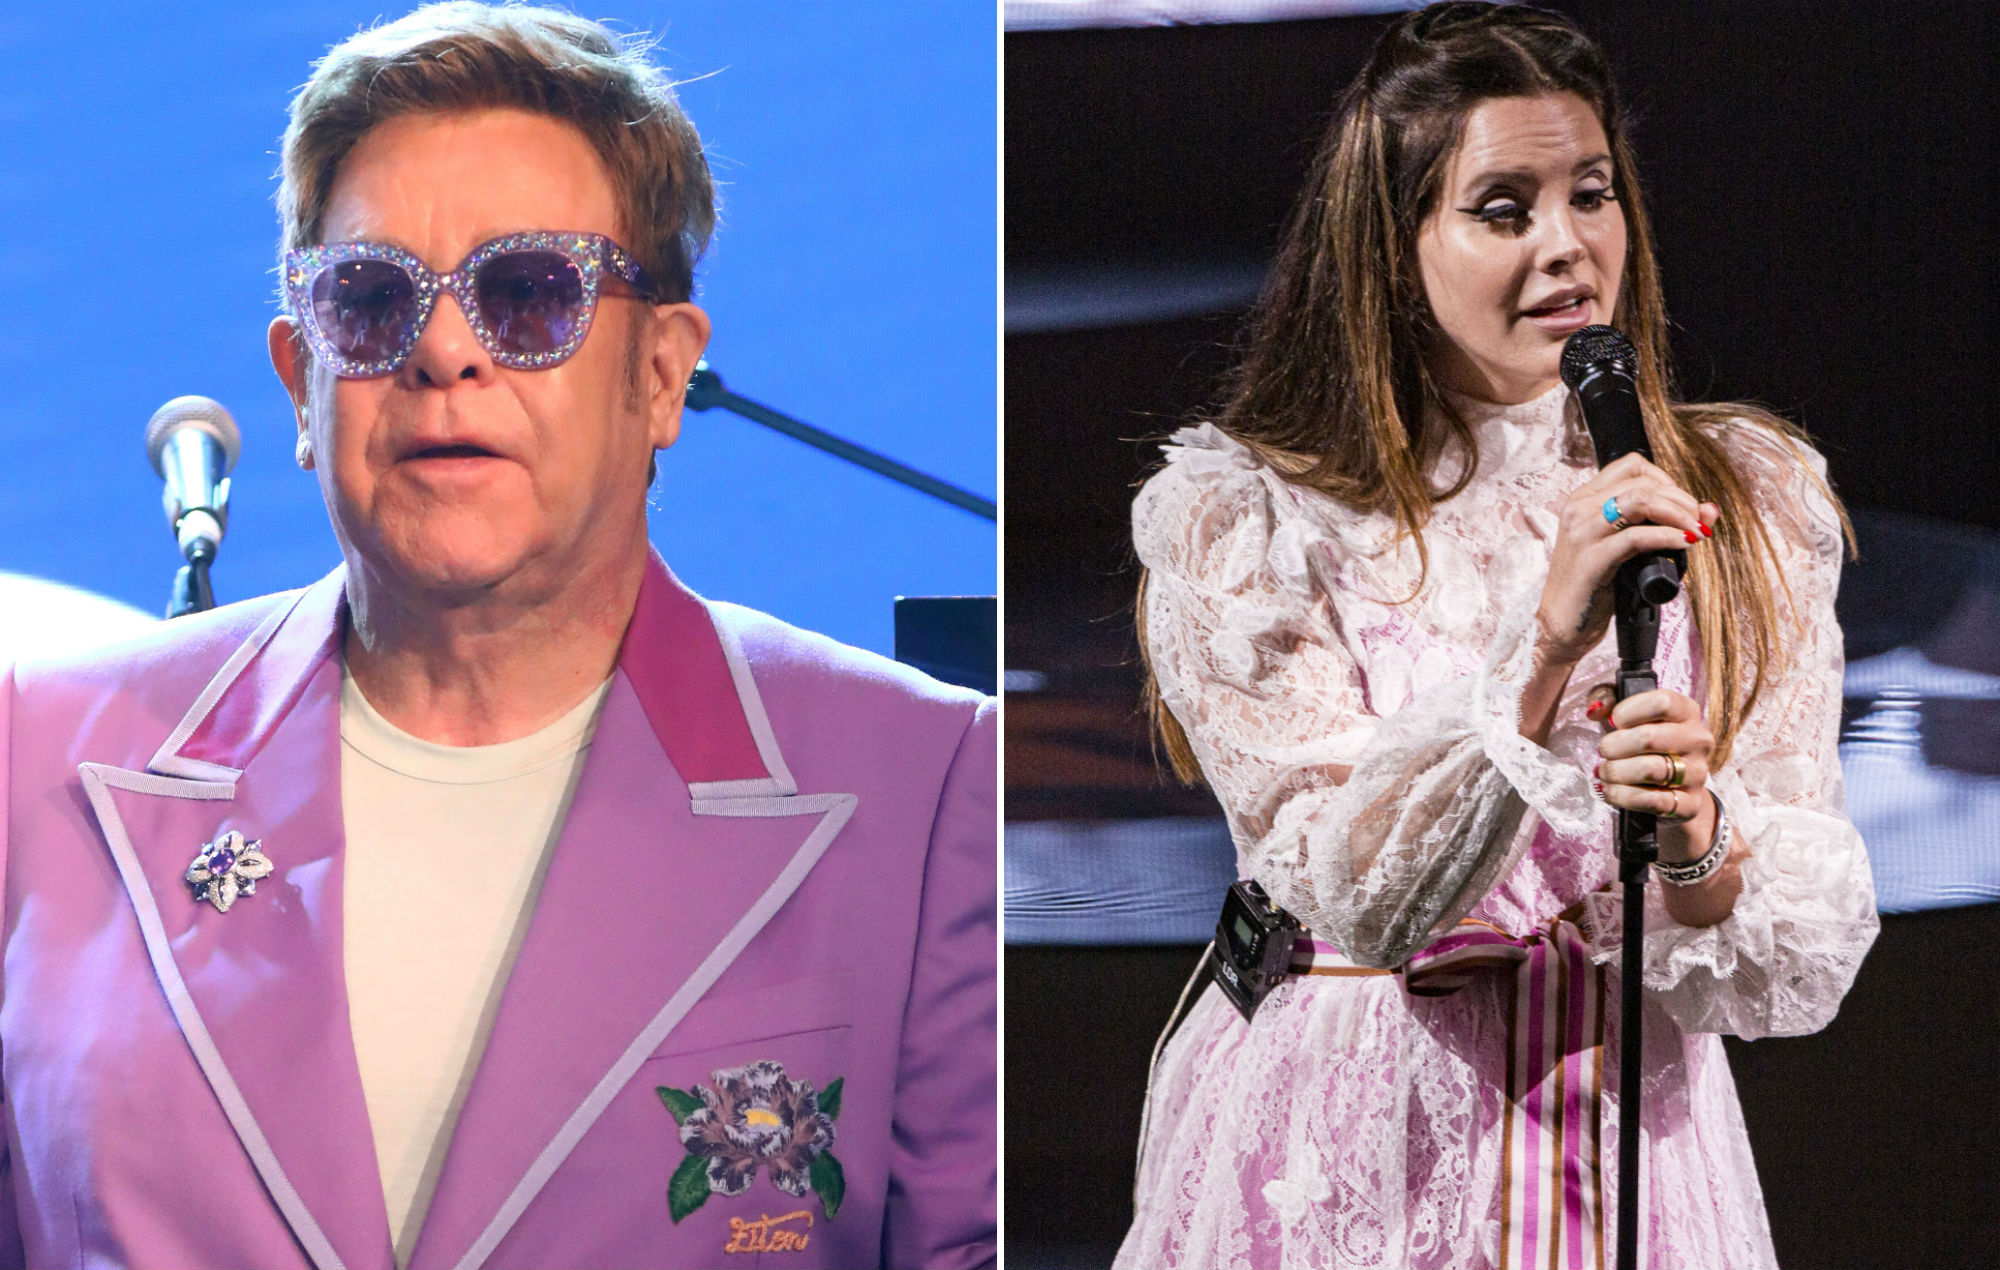 Lana Del Rey Grilled By Elton John On Notorious Snl